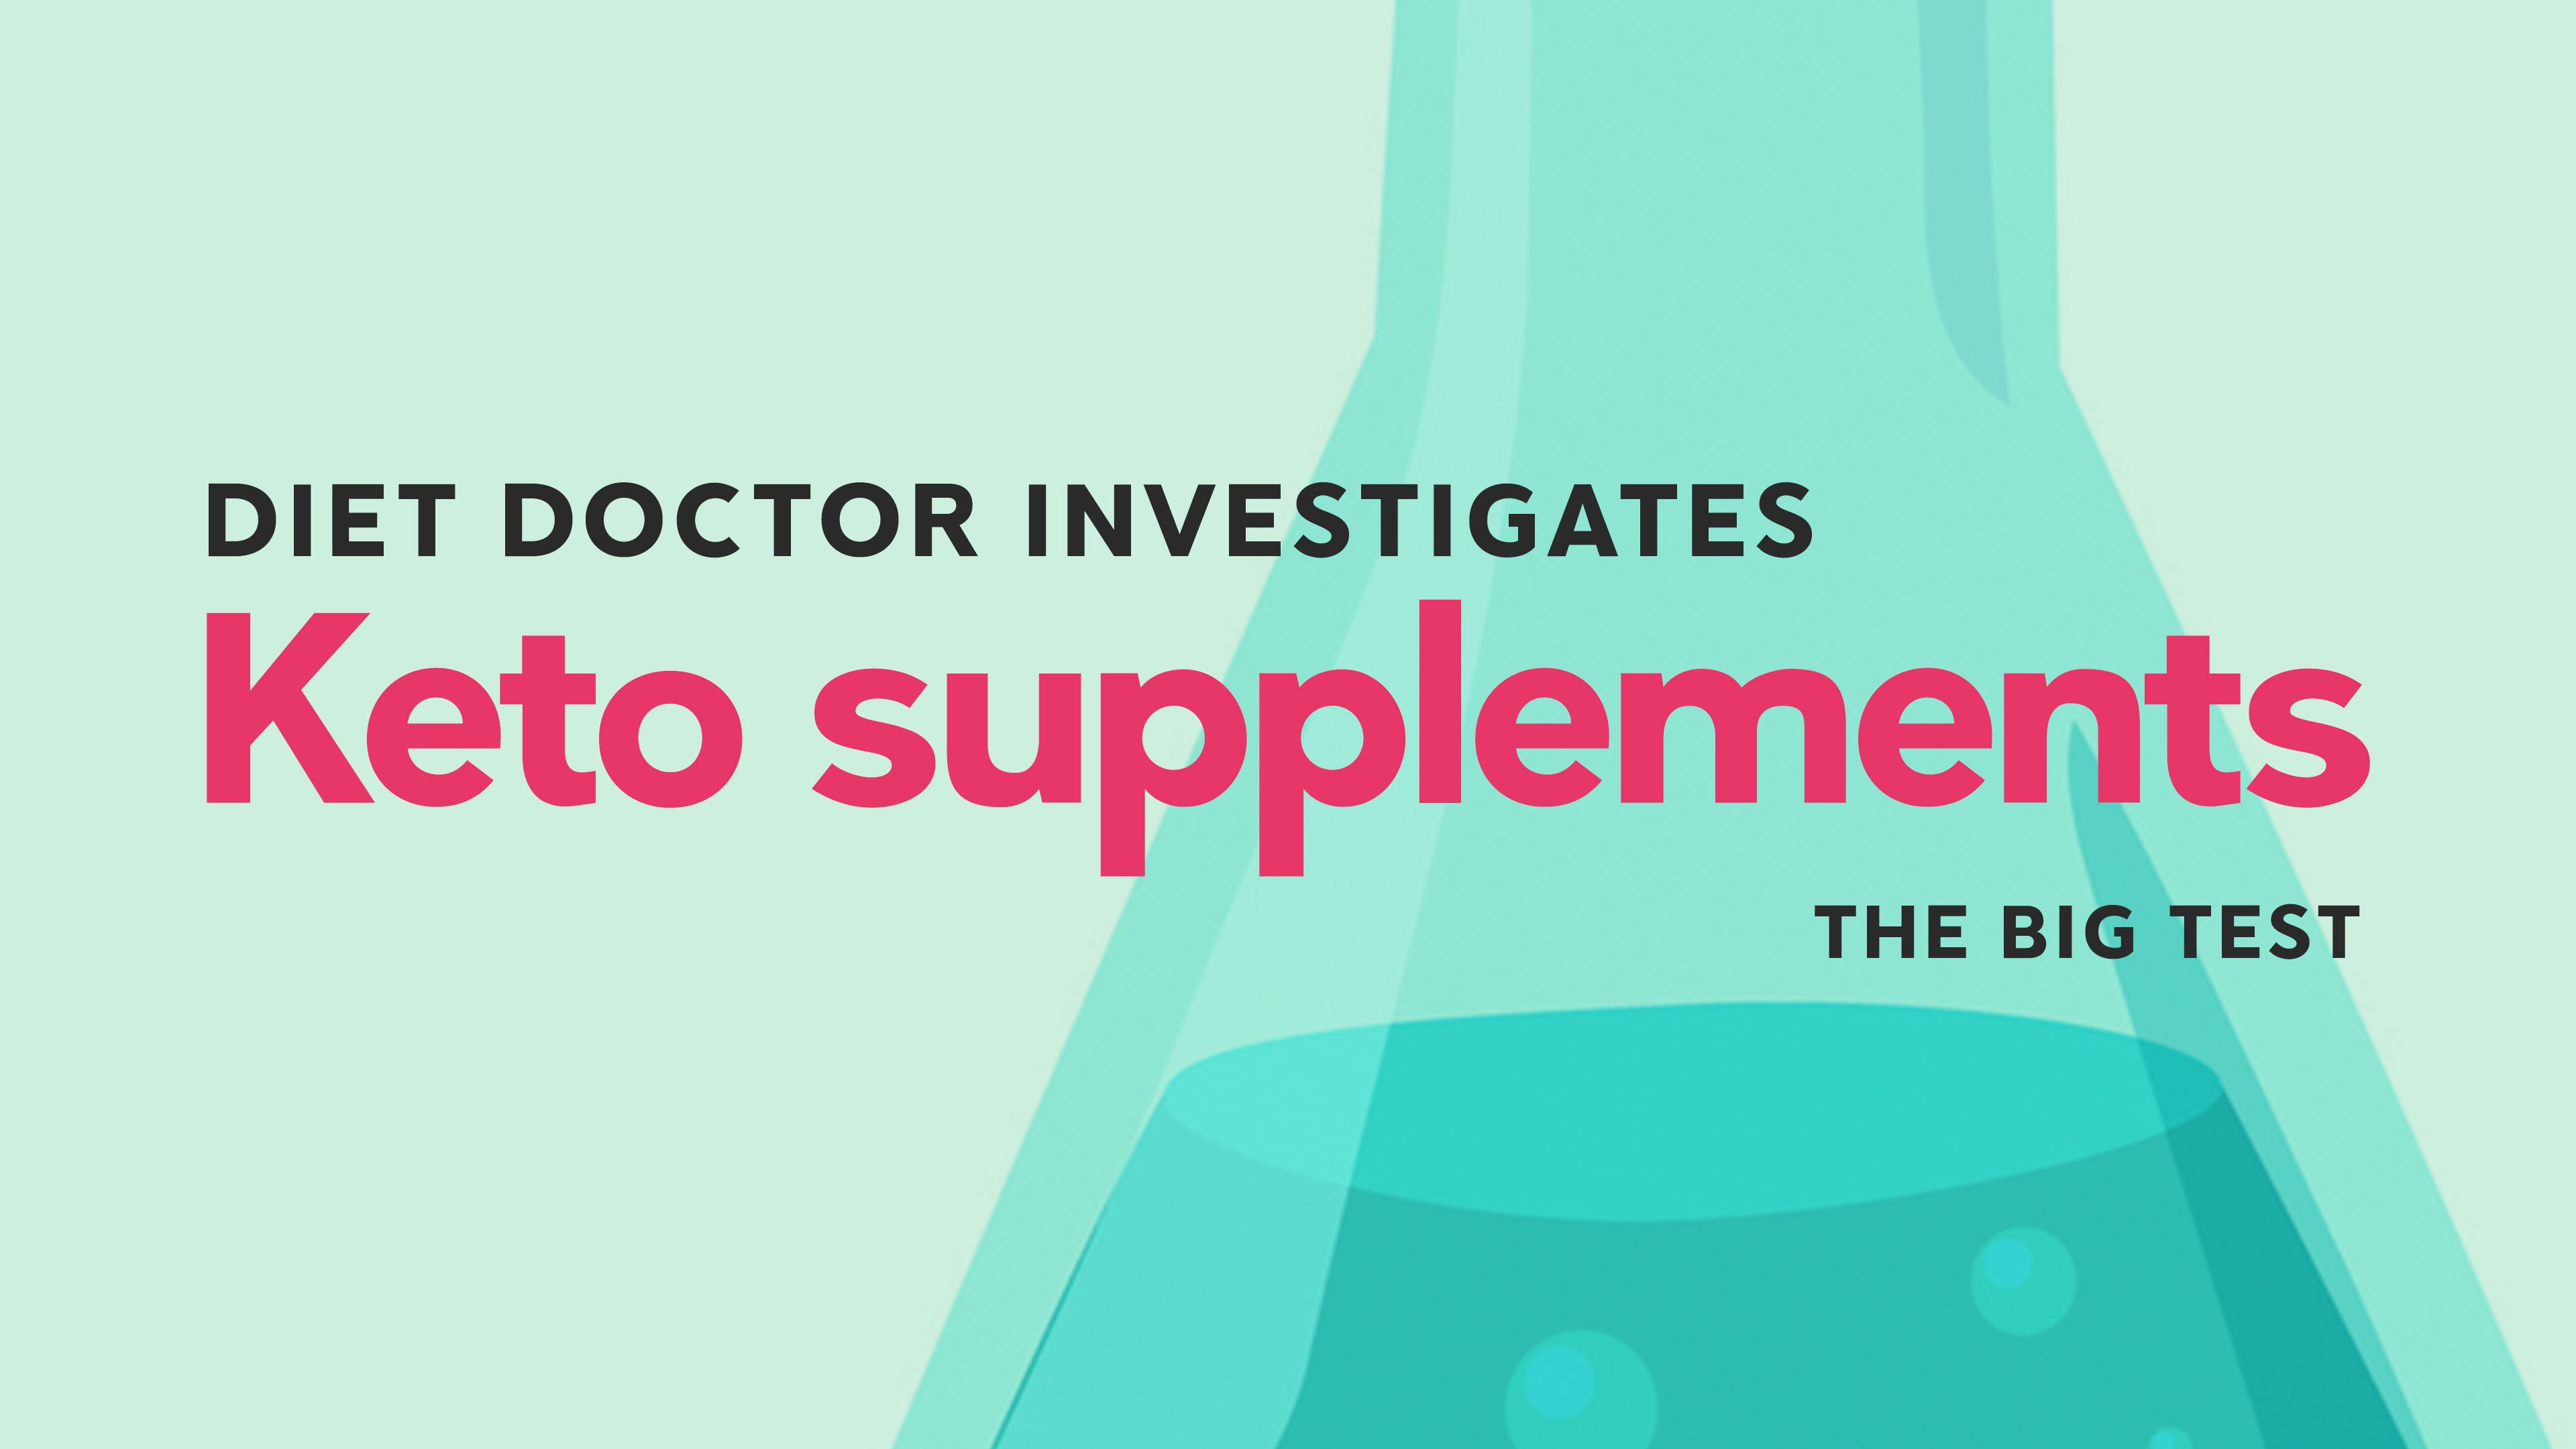 Do exogenous ketone supplements work? The big test